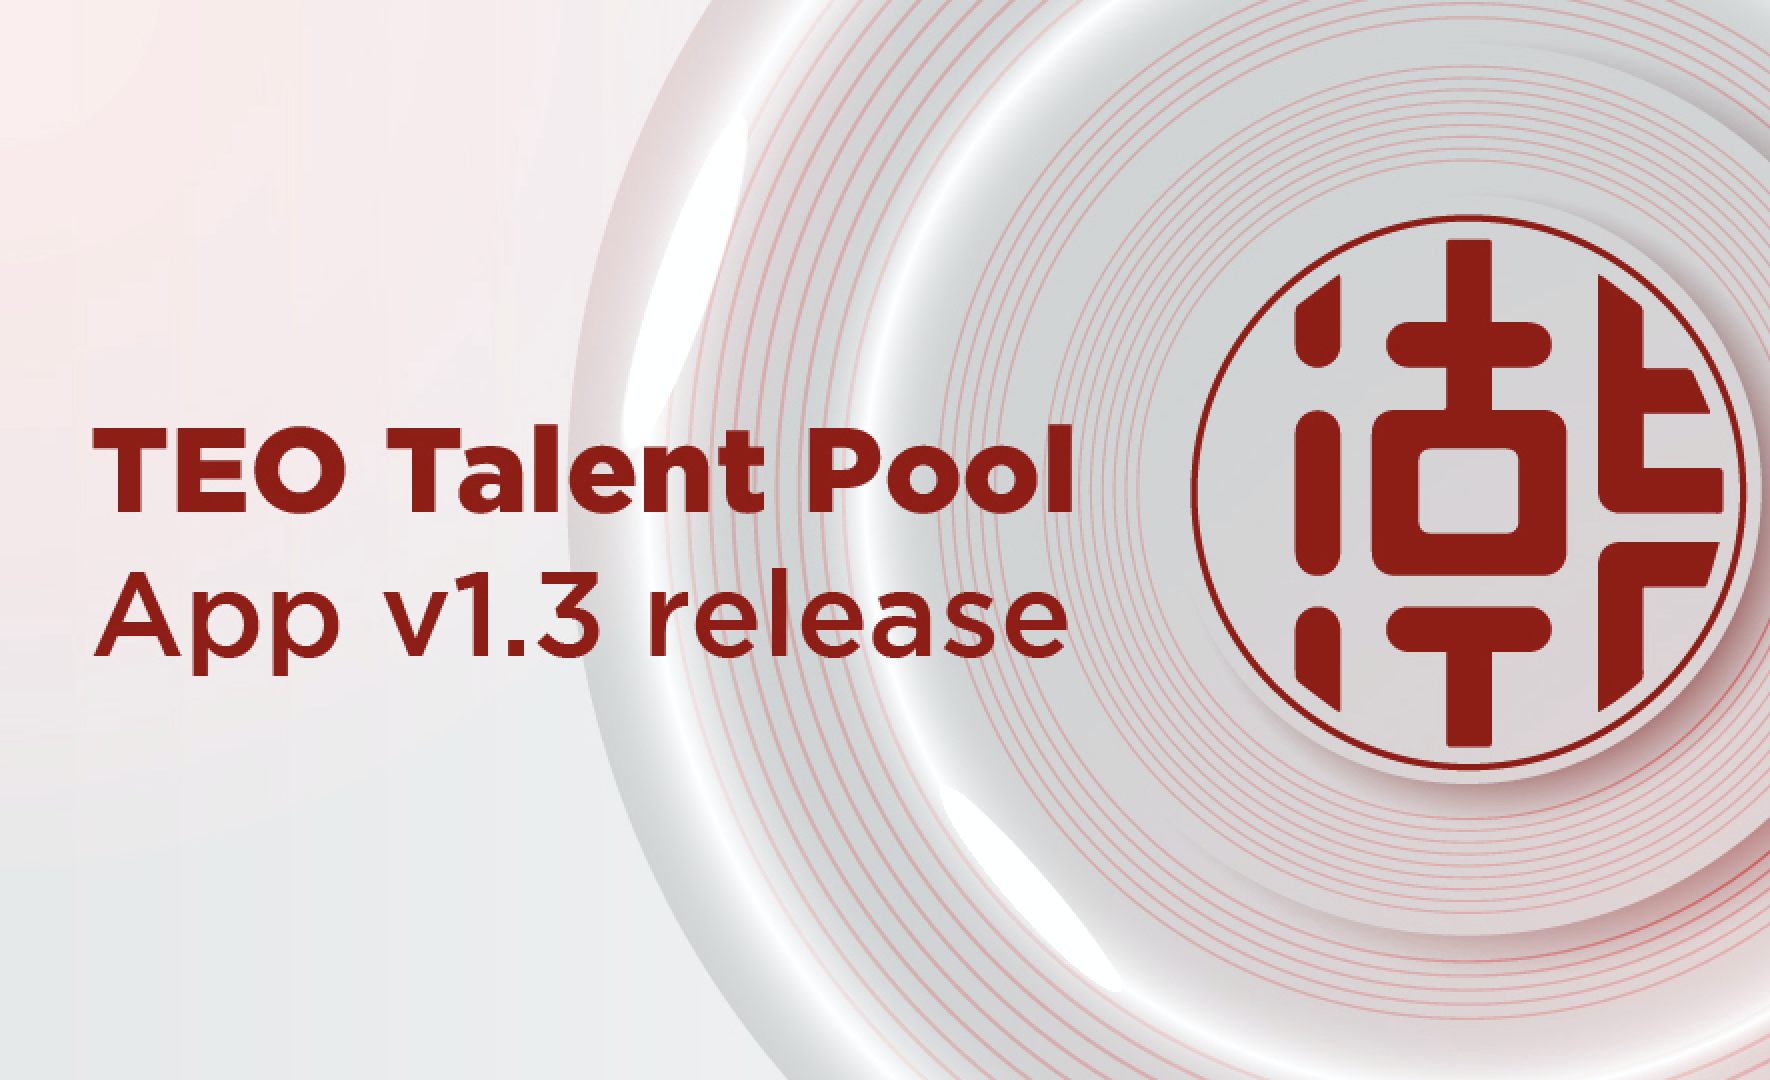 New Release of TEO Talent Pool App v1.3 with Email invitation, balance trackability and token house keeping